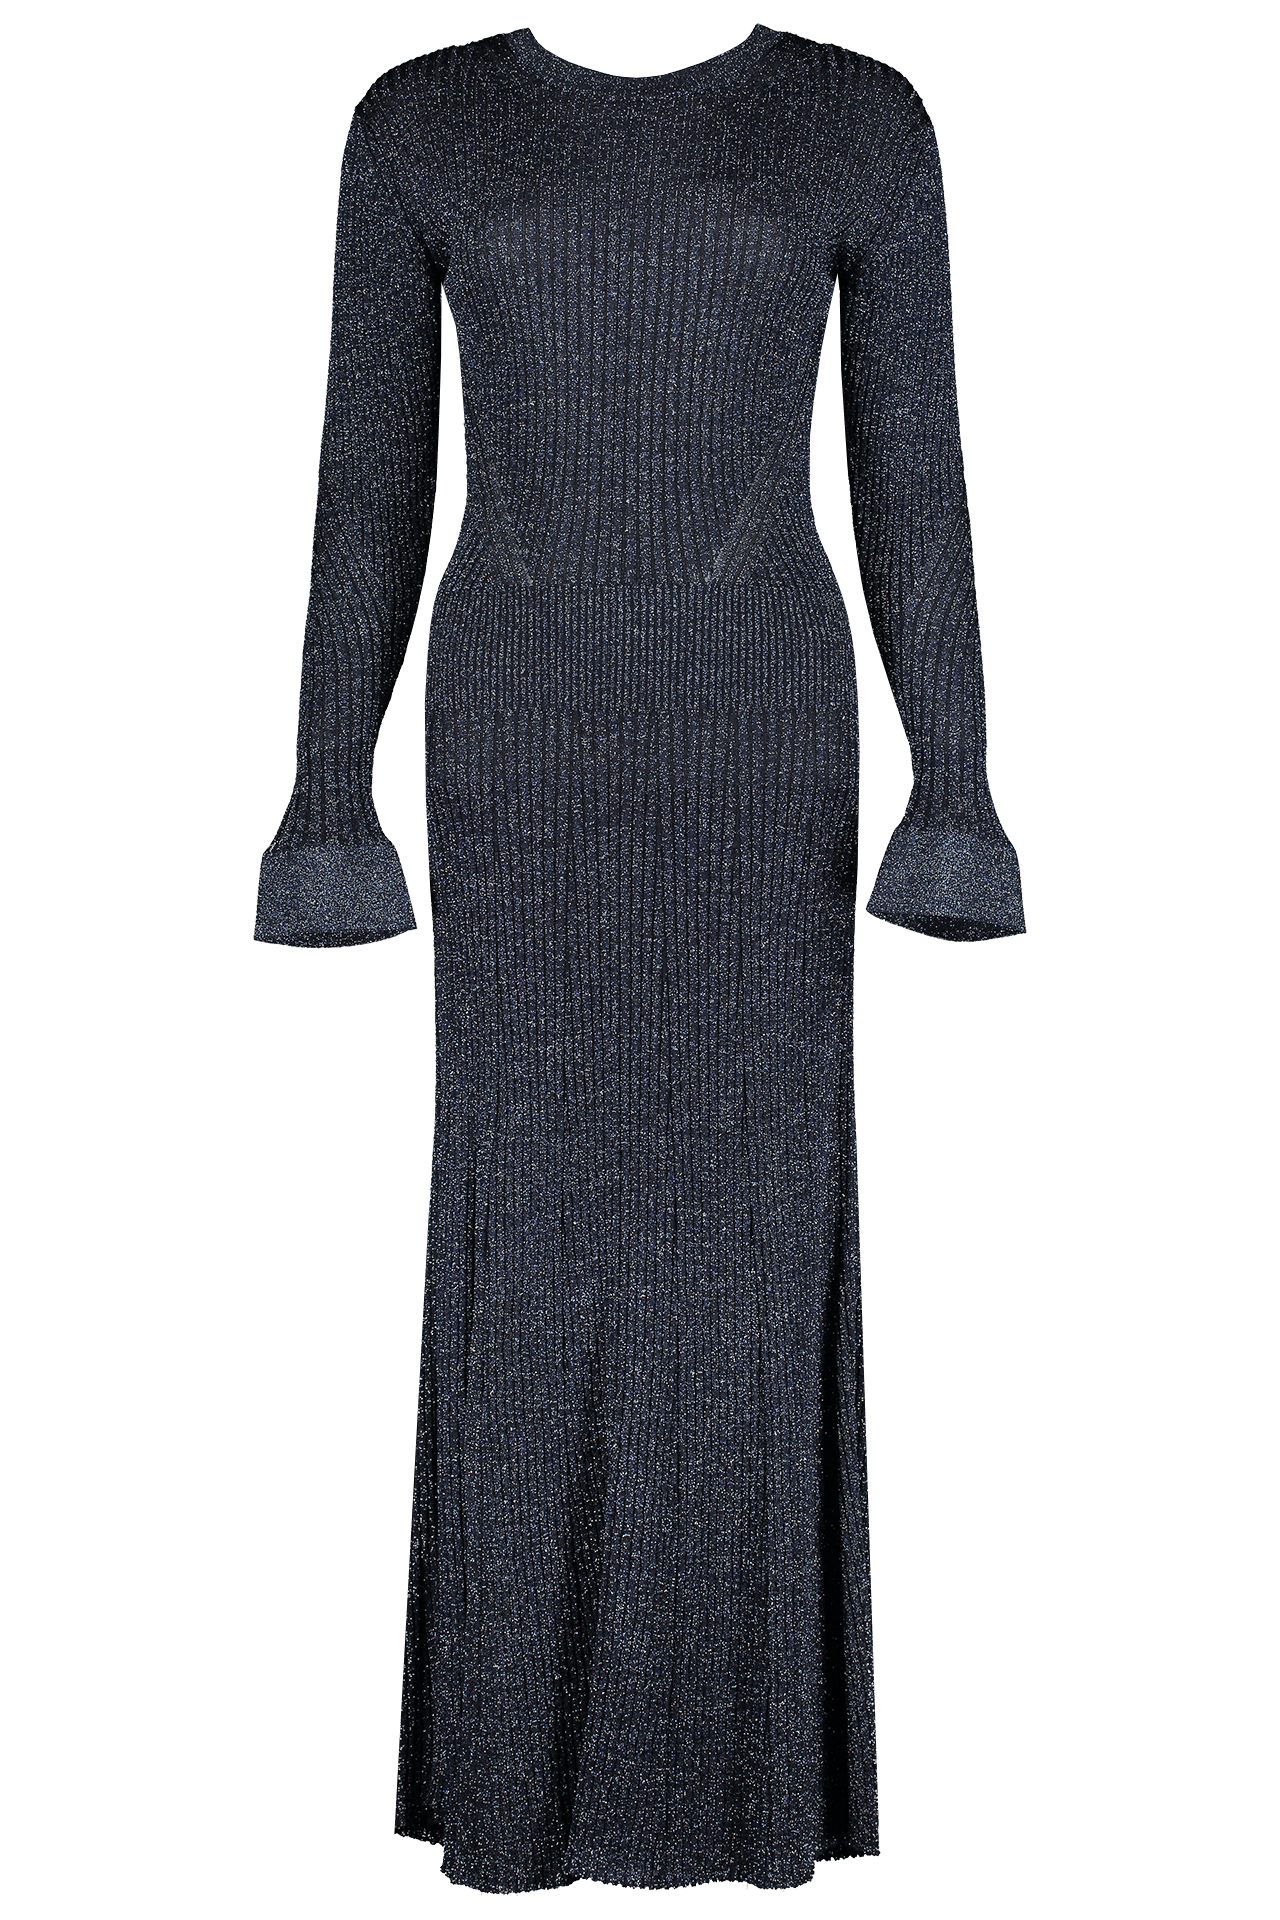 Front view image of Chloé Long Sleeve Knit Dress